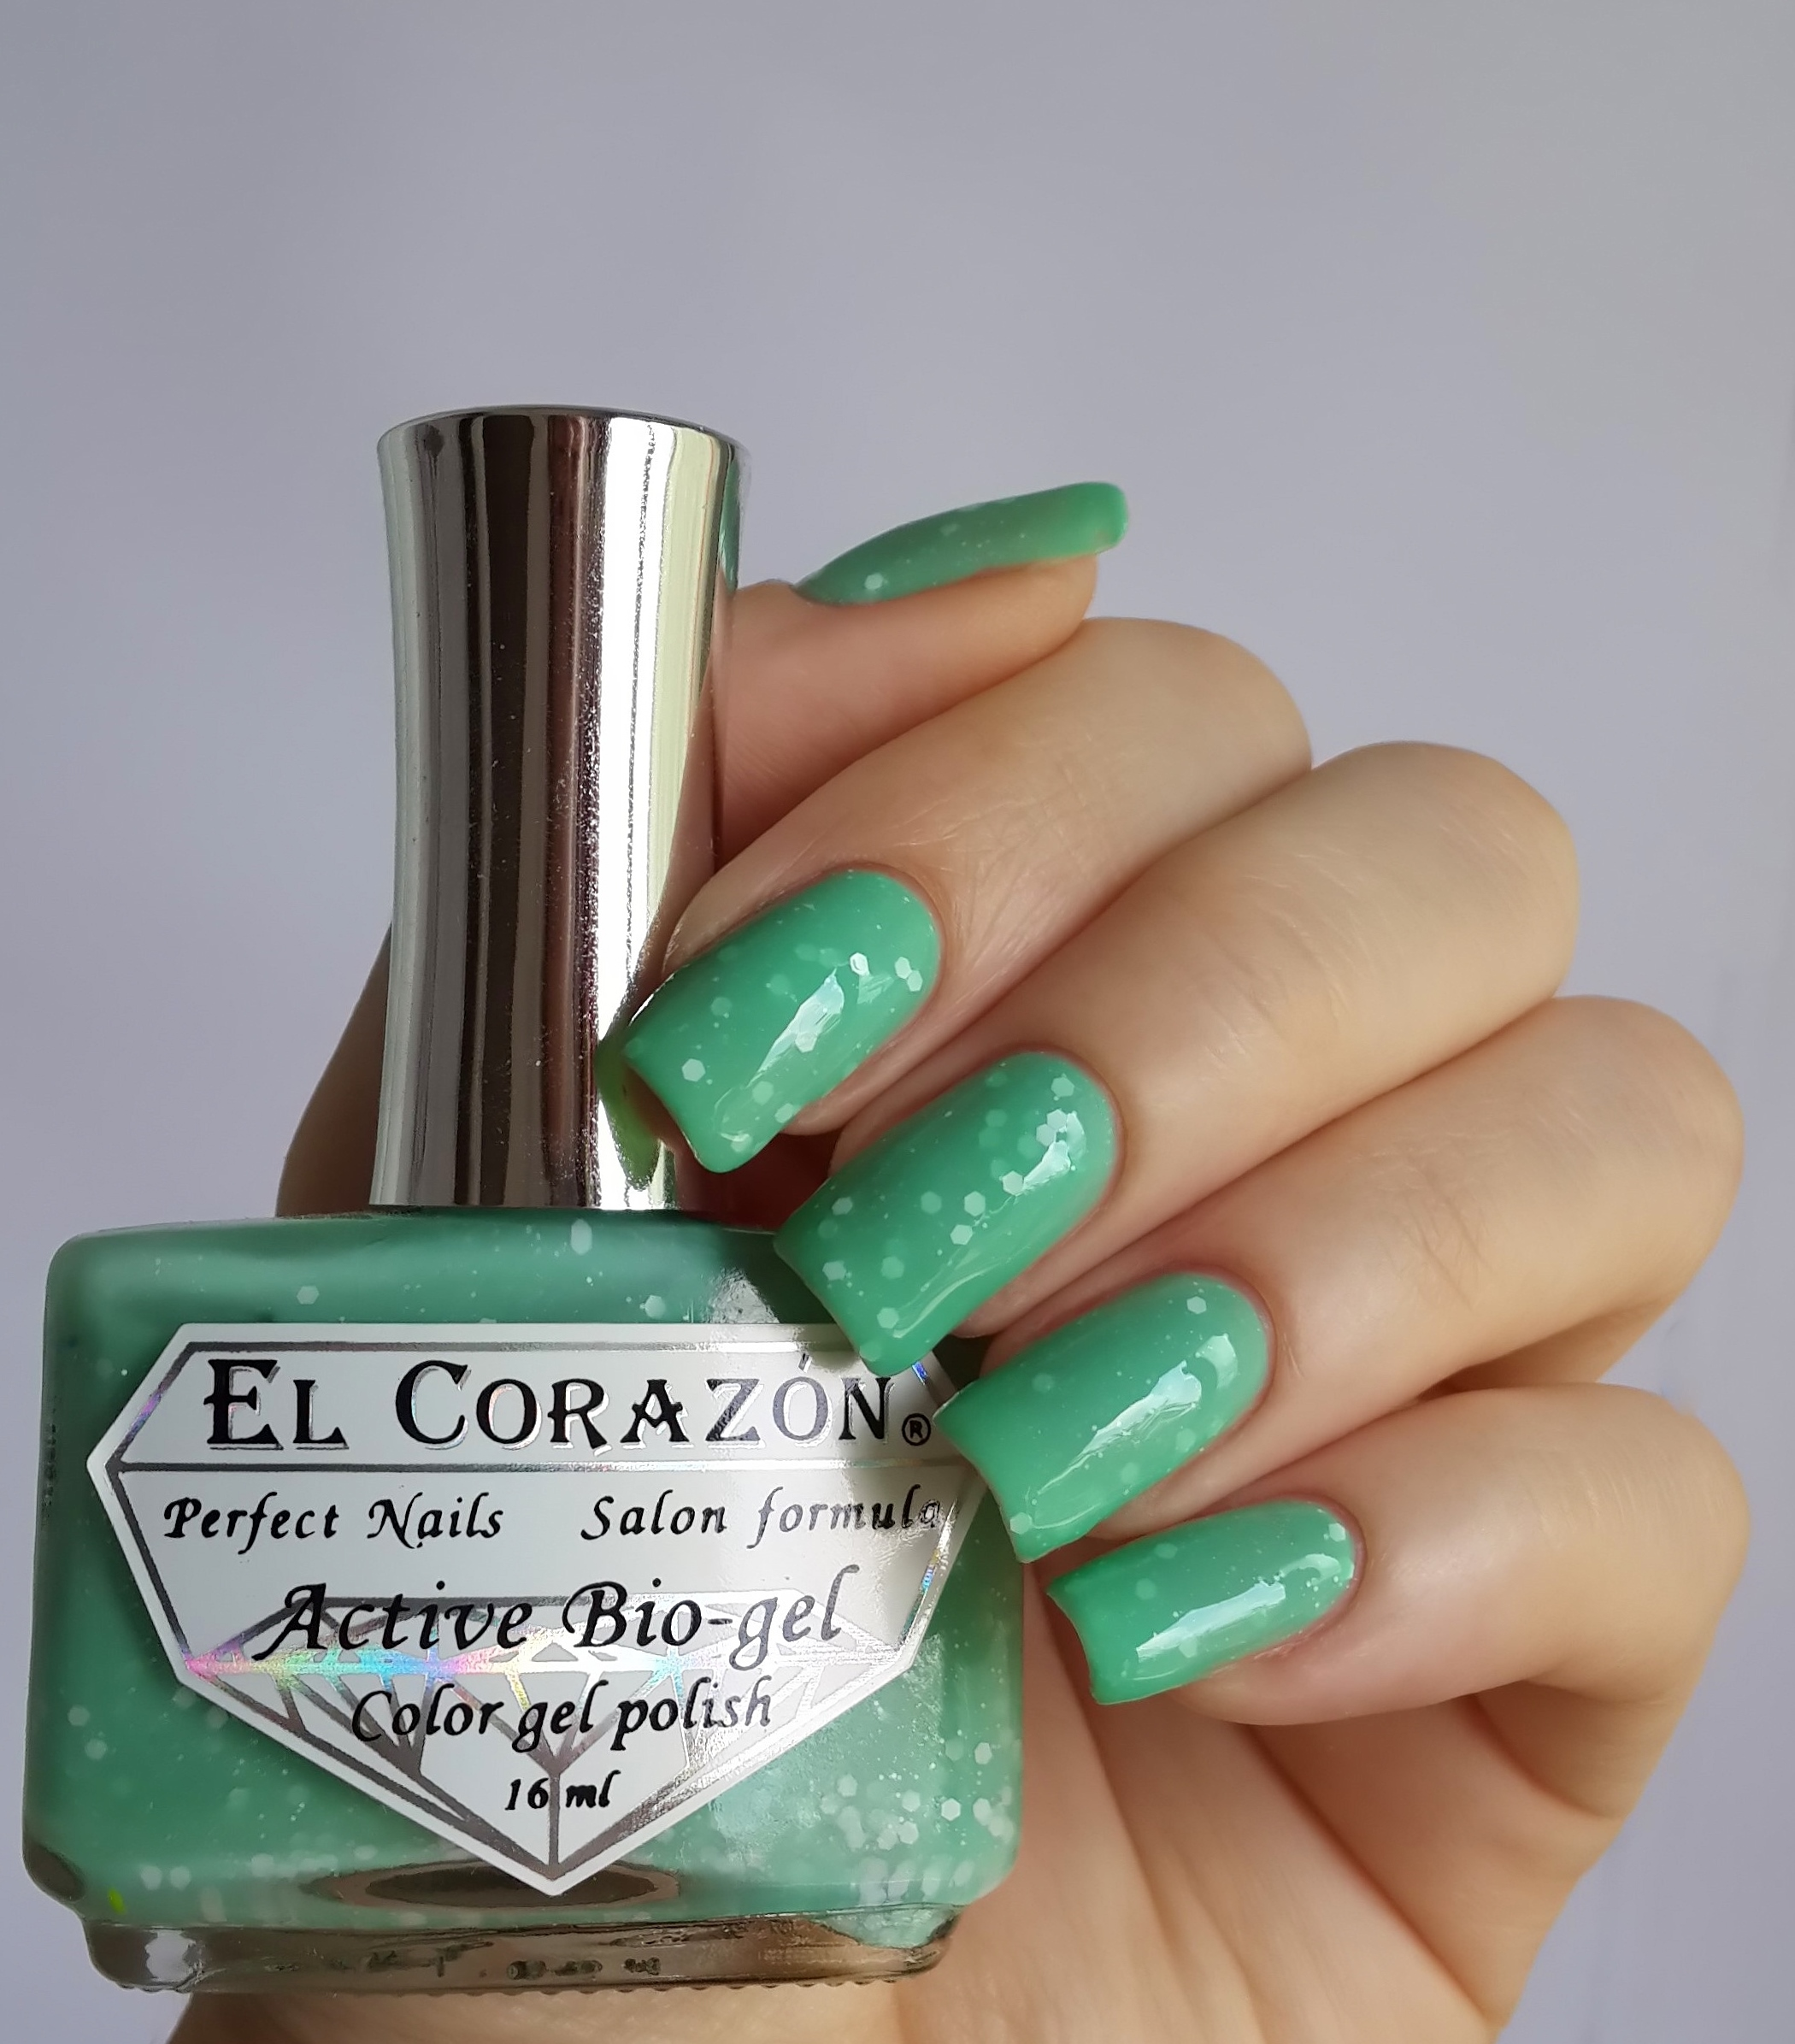 EL Corazon Active Bio-gel Color gel polish Fashion girl mammy №423/212